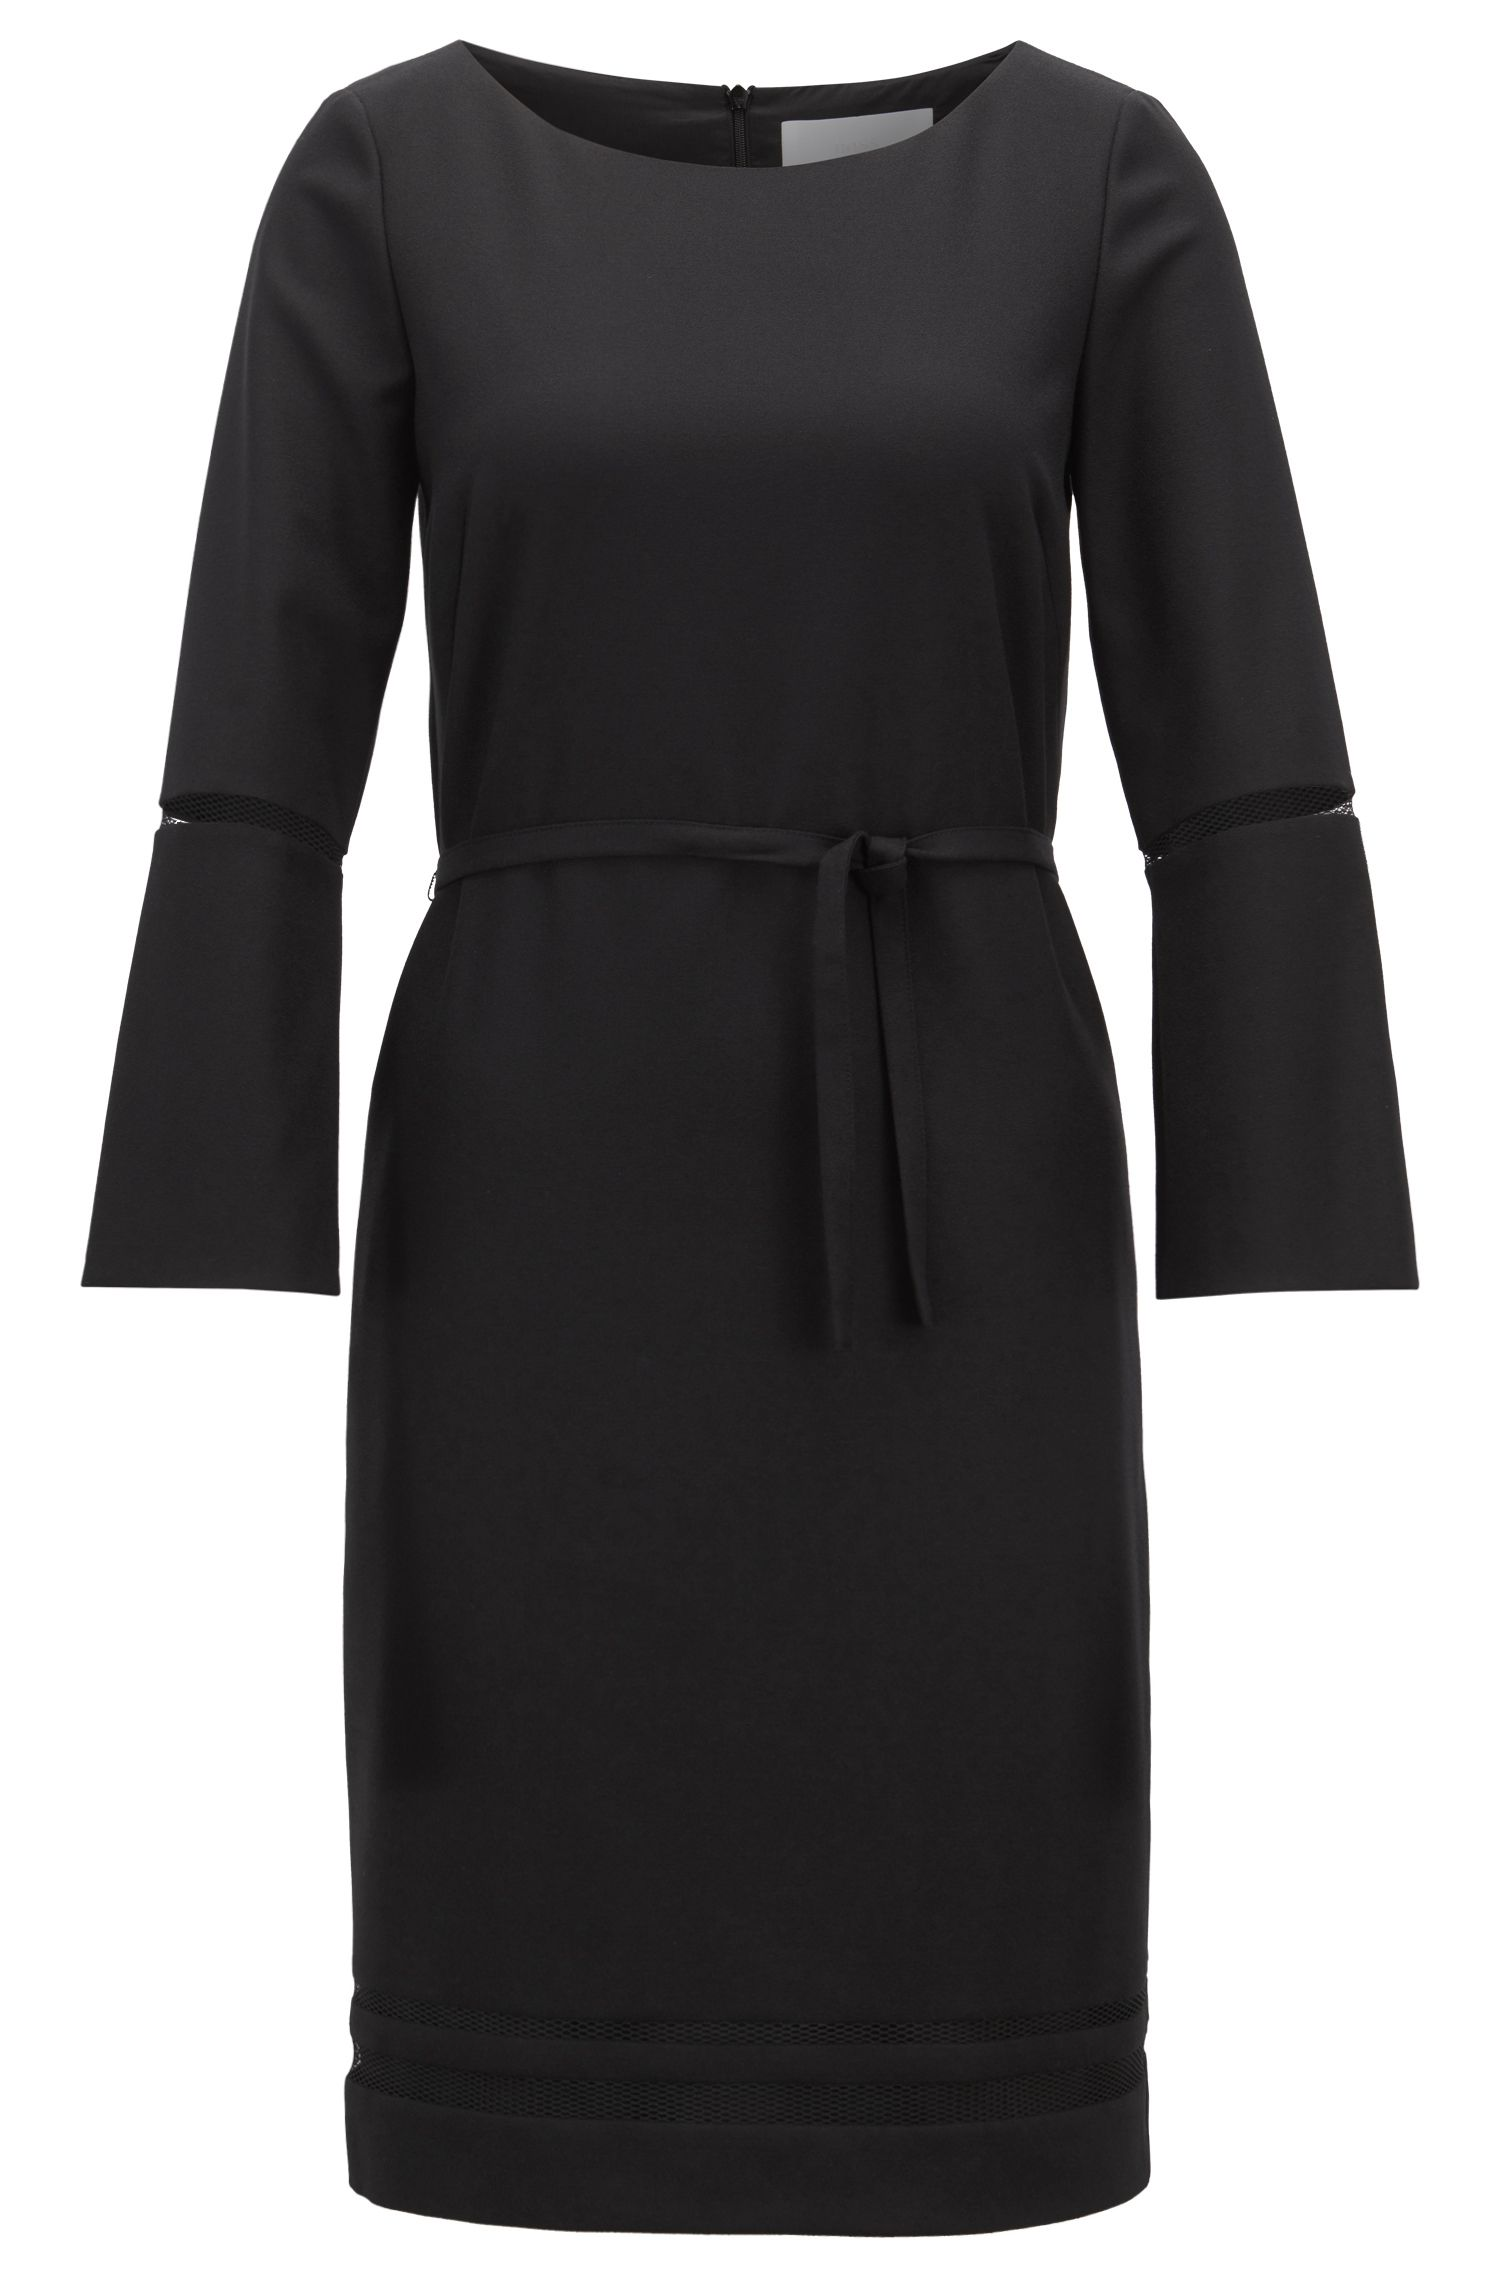 Flared-sleeve dress in stretch crepe with mesh detailing, Black